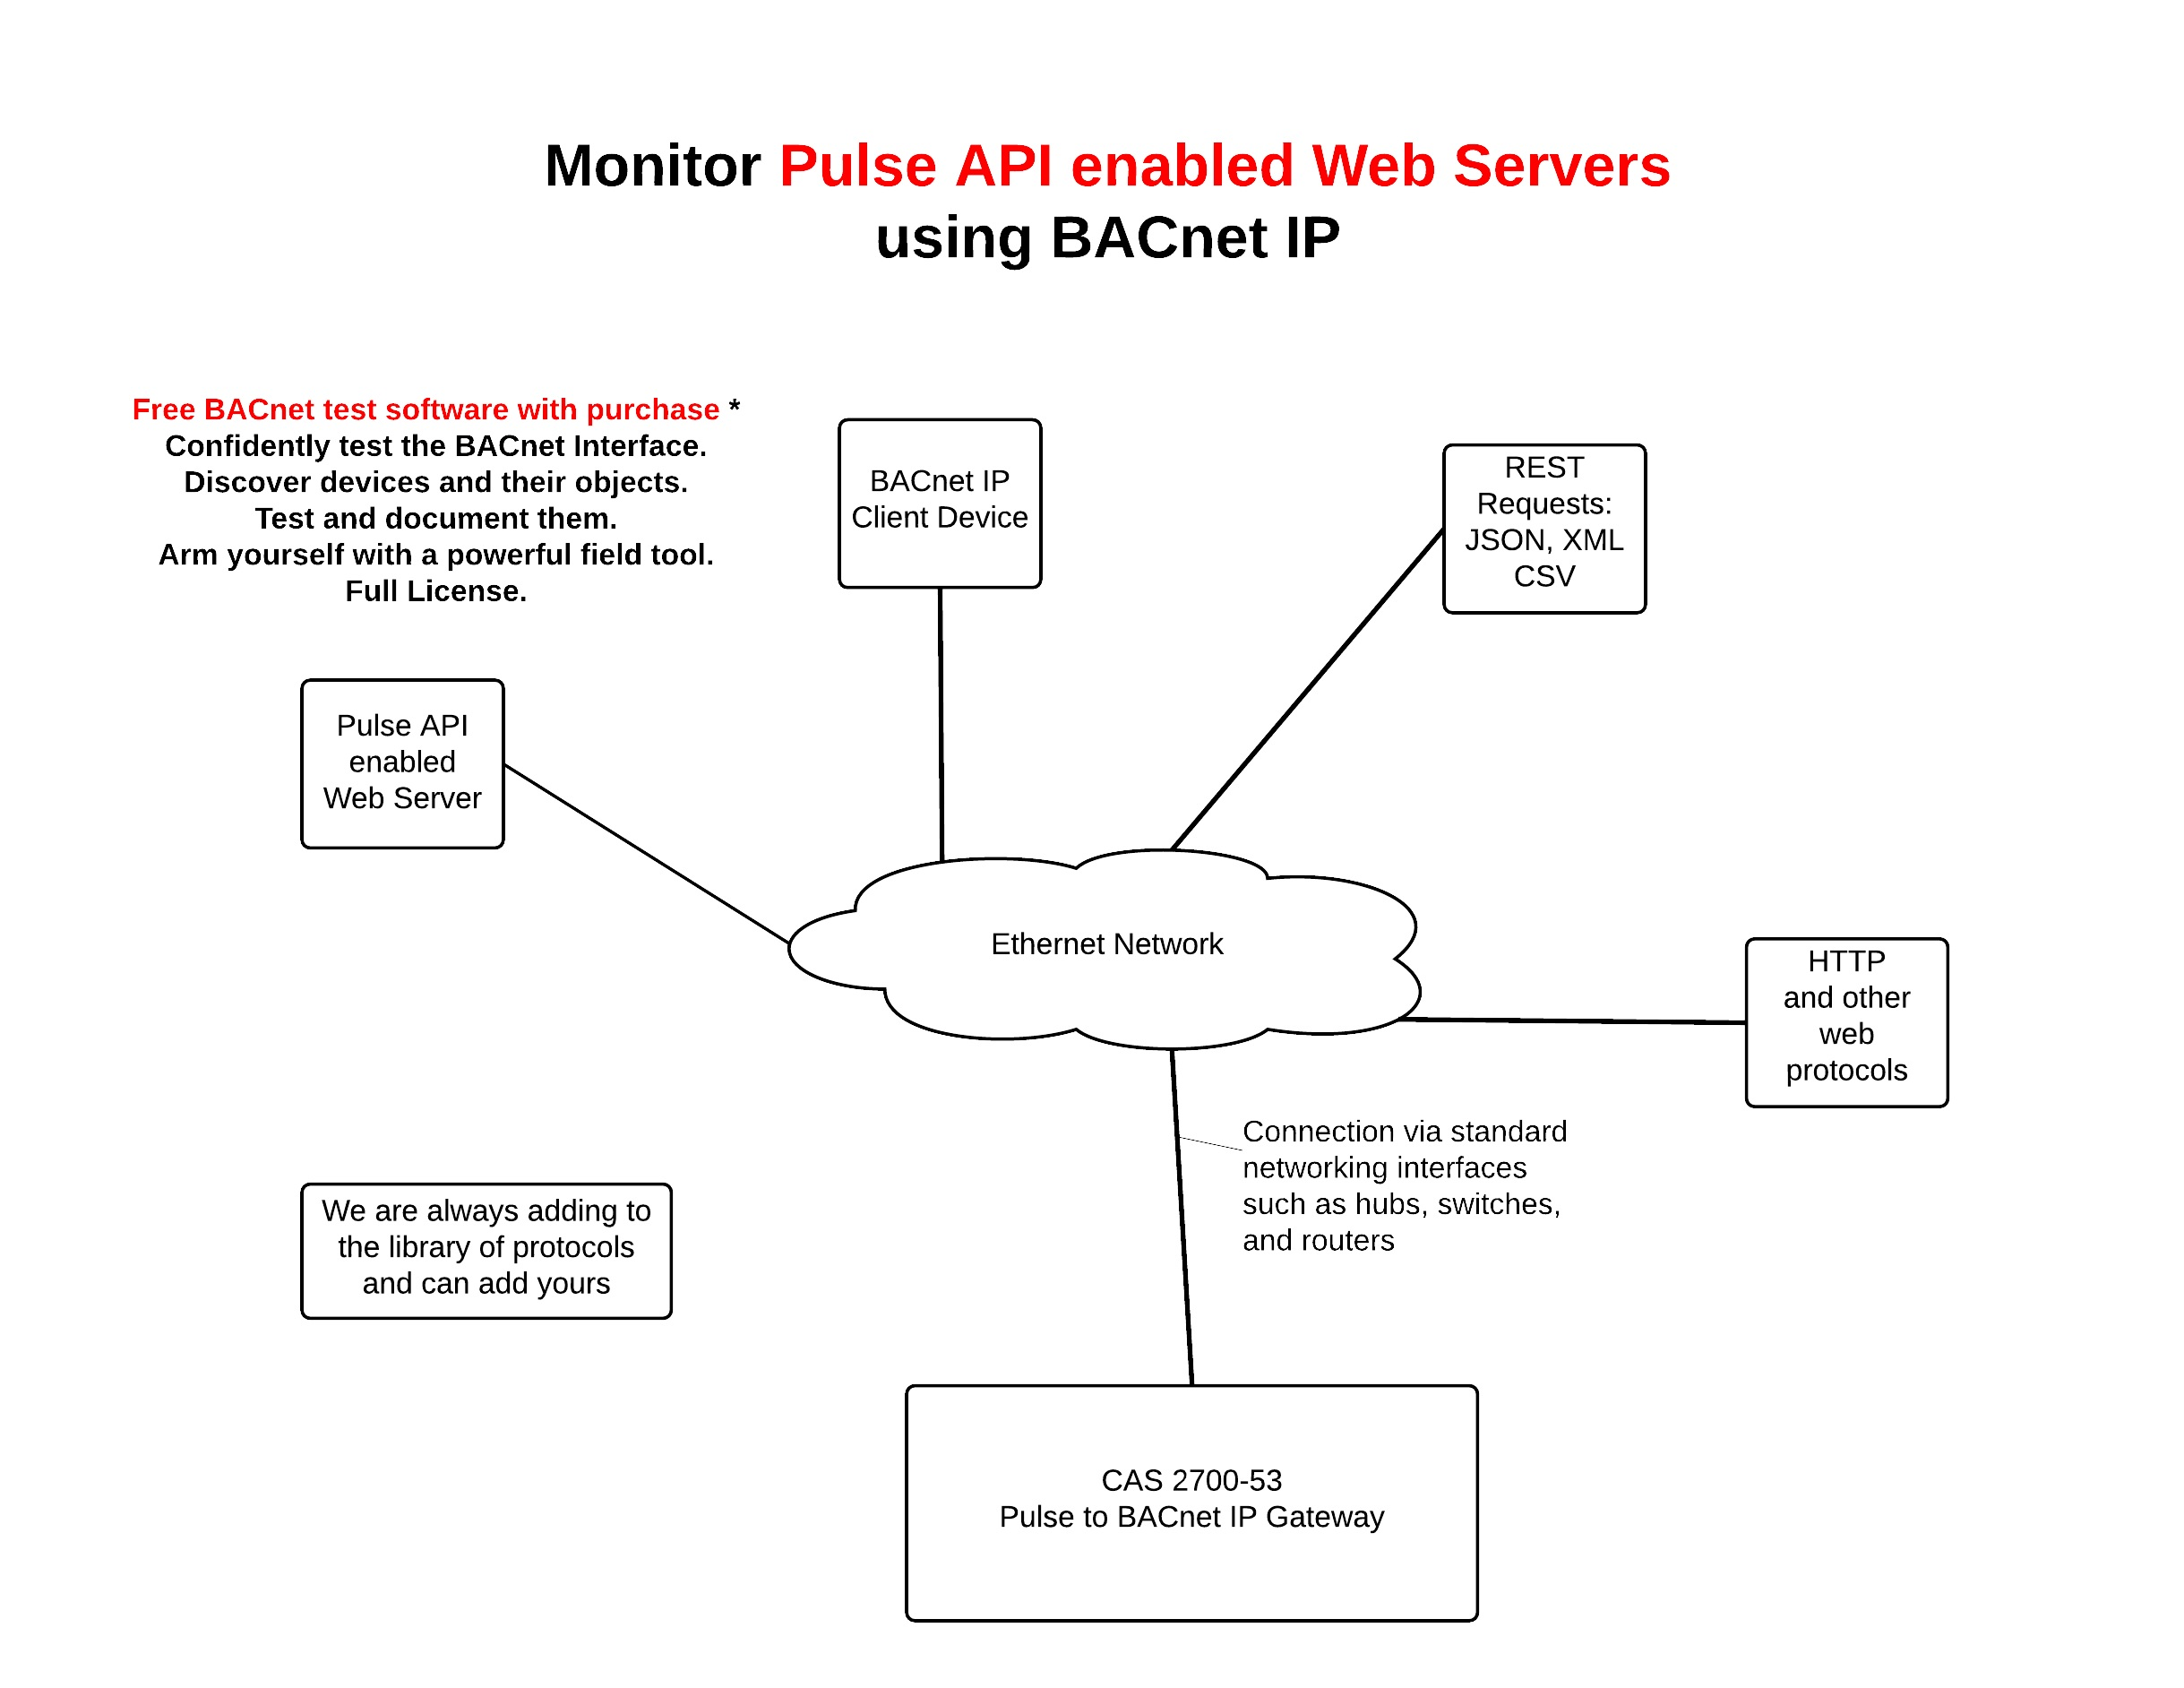 /2017/mar/10-13-04-59_CAS2700-53 Pulse Gateway Connection Diagram.jpg